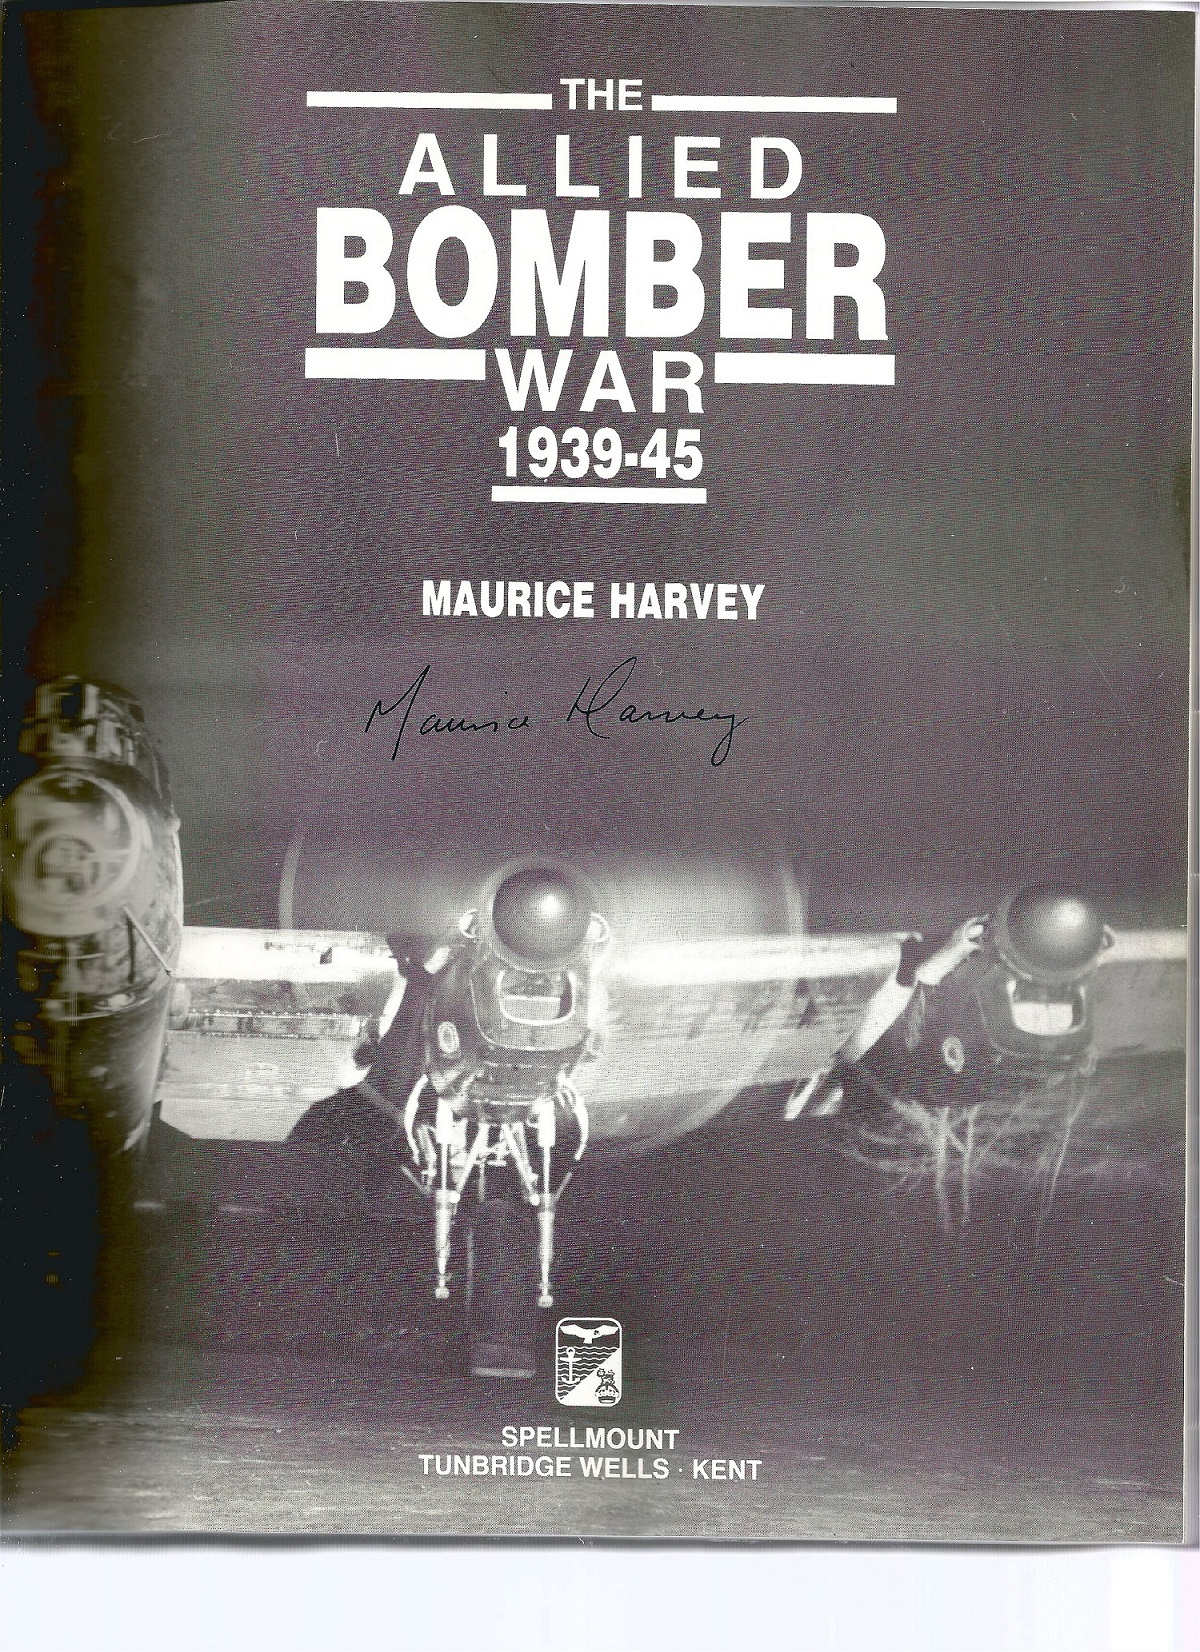 Maurice Harvey. The Allied Bomber War 1939 45. First Edition WW2 hardback book in good condition. - Image 2 of 2